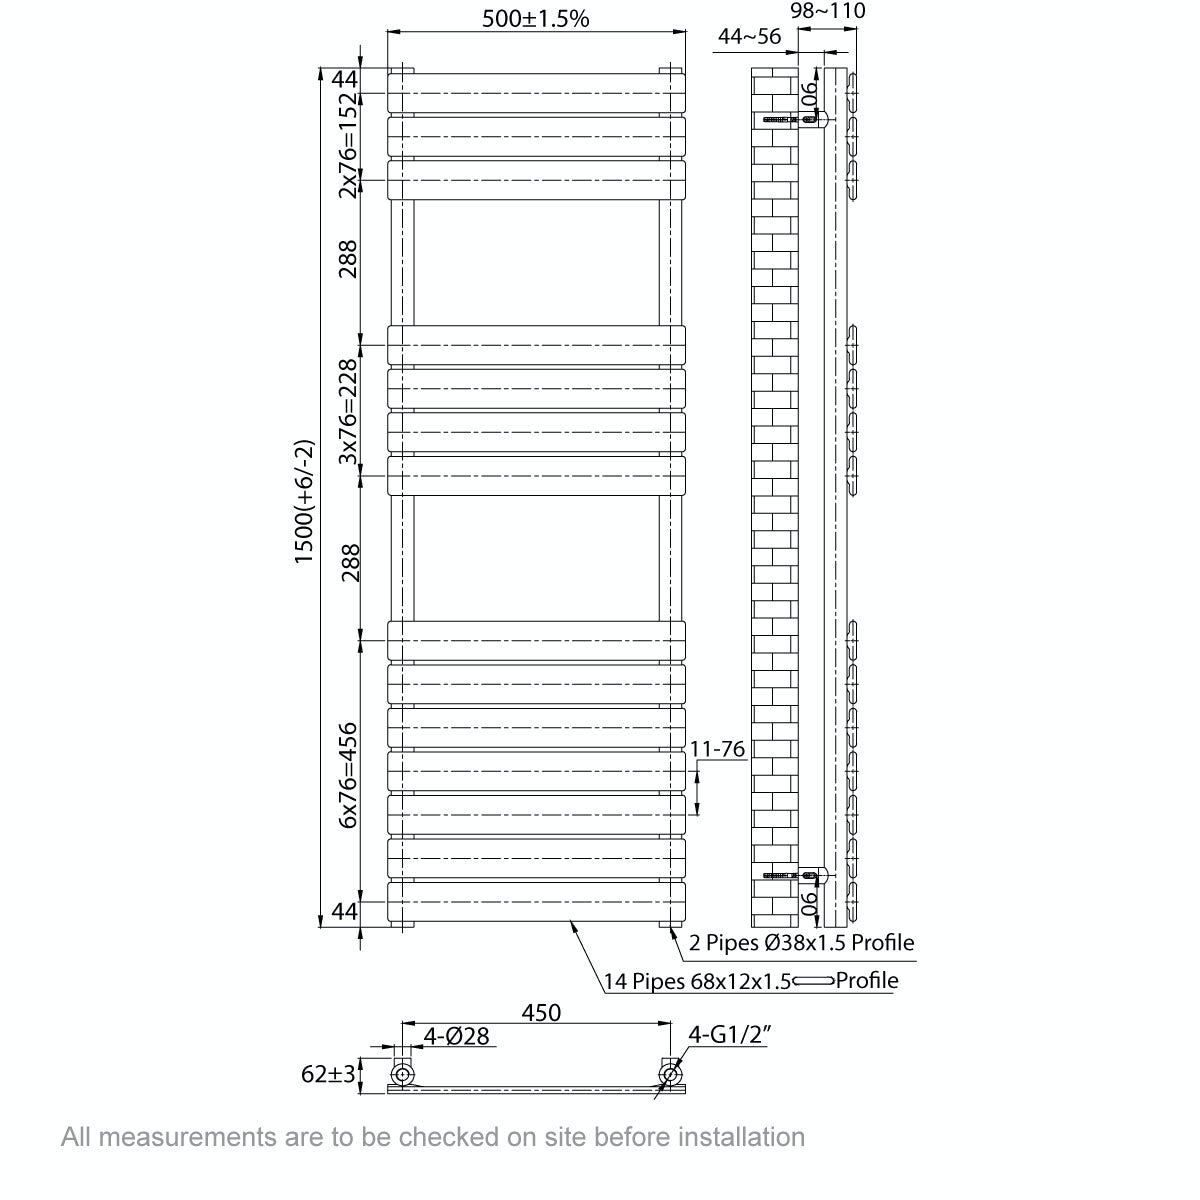 Dimensions for Orchard Signelle heated towel rail 1500 x 500